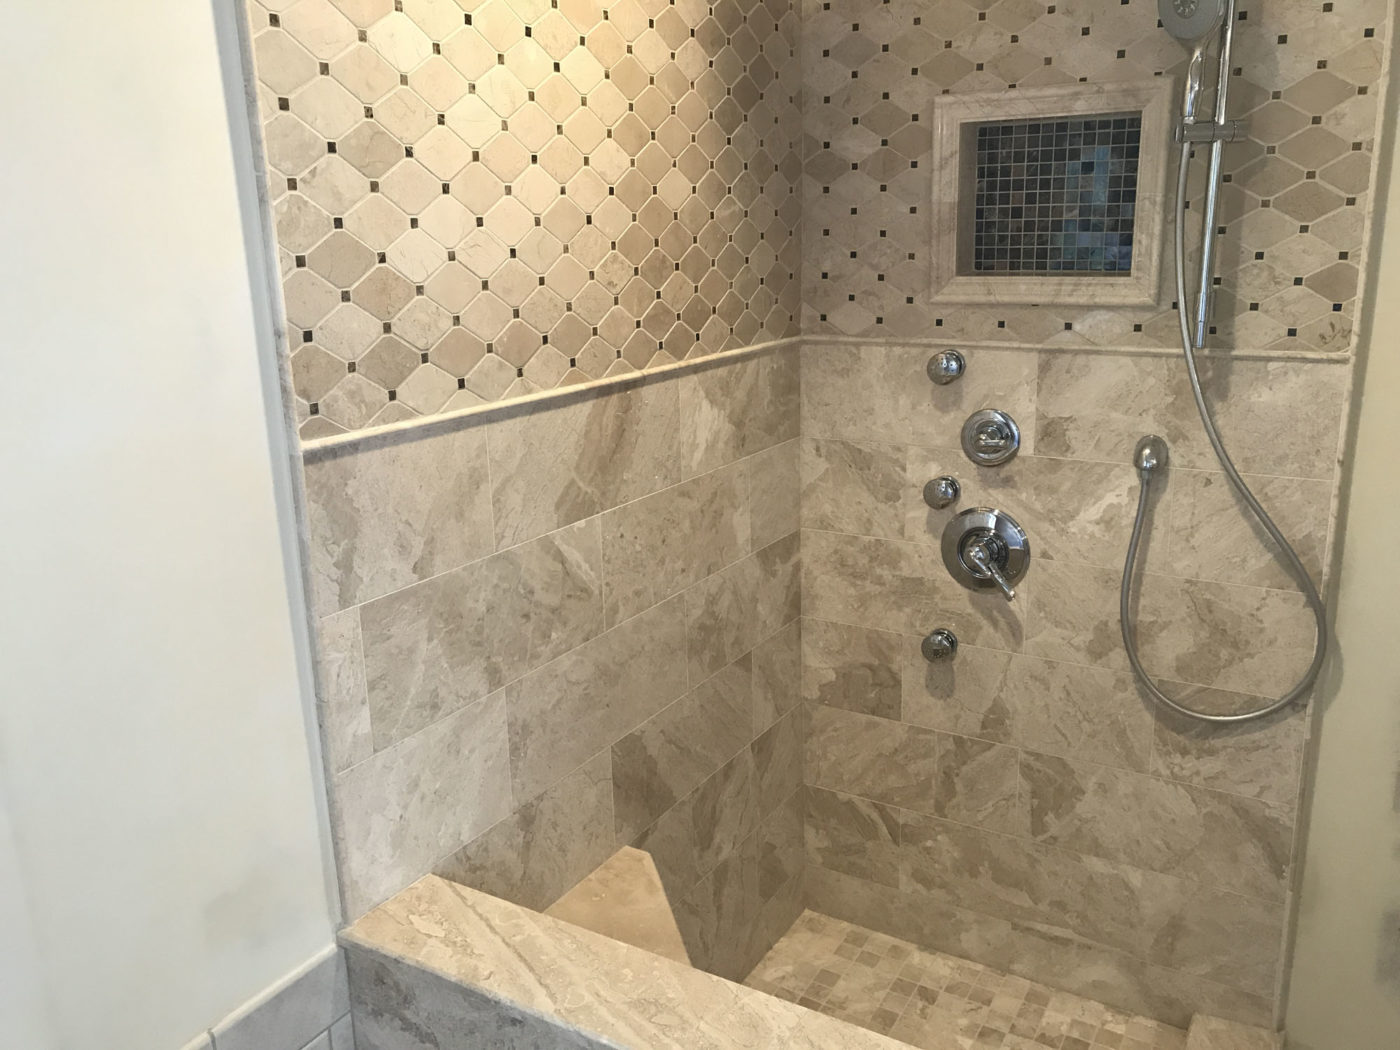 Shower Remodeling in Barrington IL - new tile